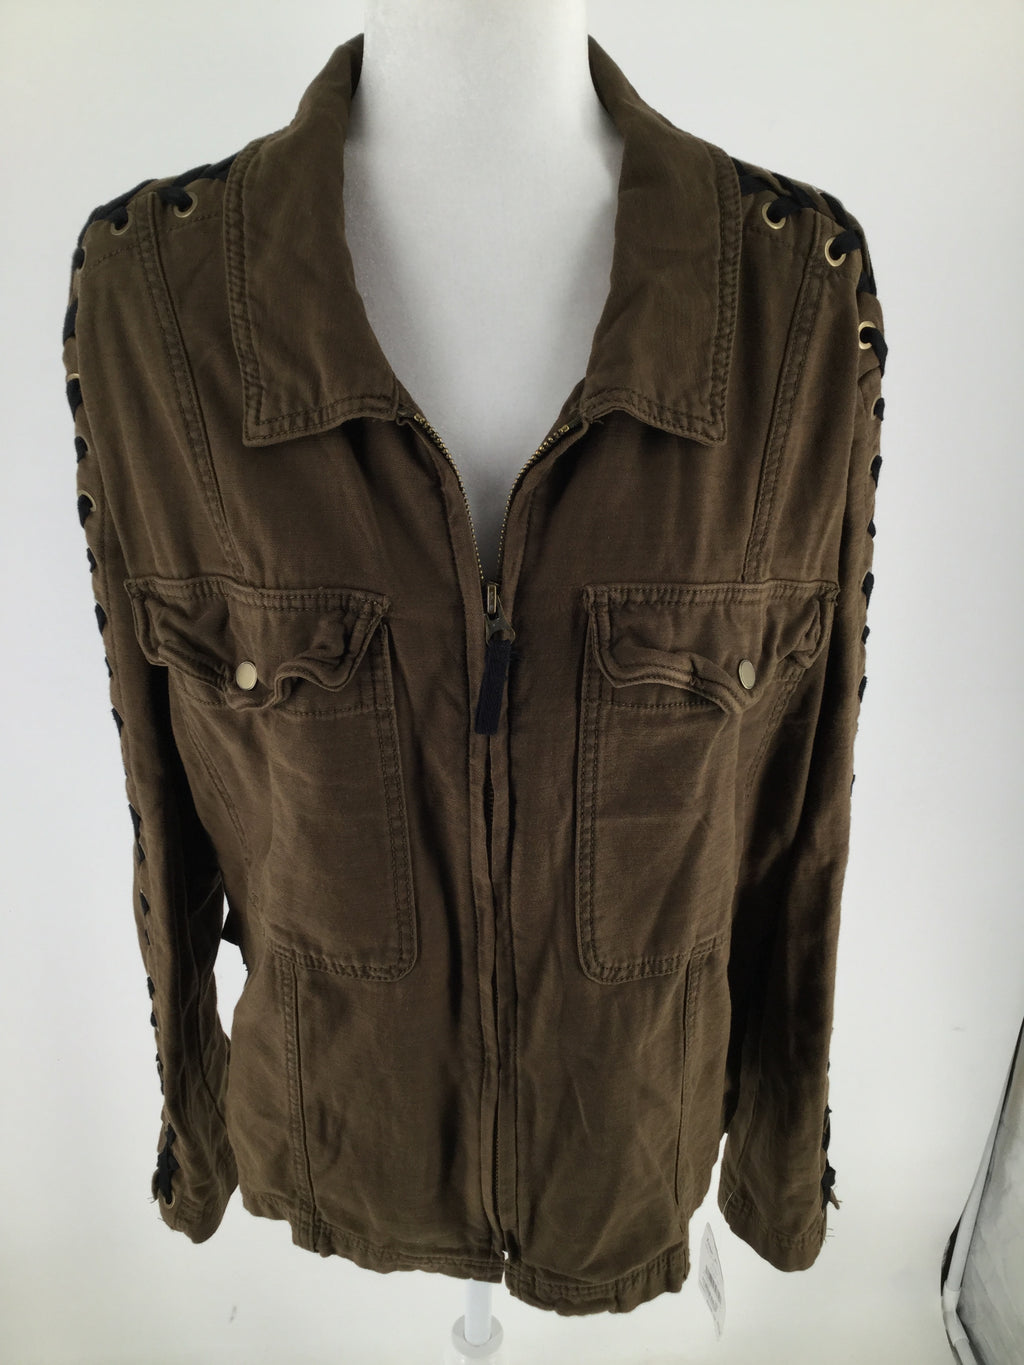 Free People Jacket Outdoor Size:l